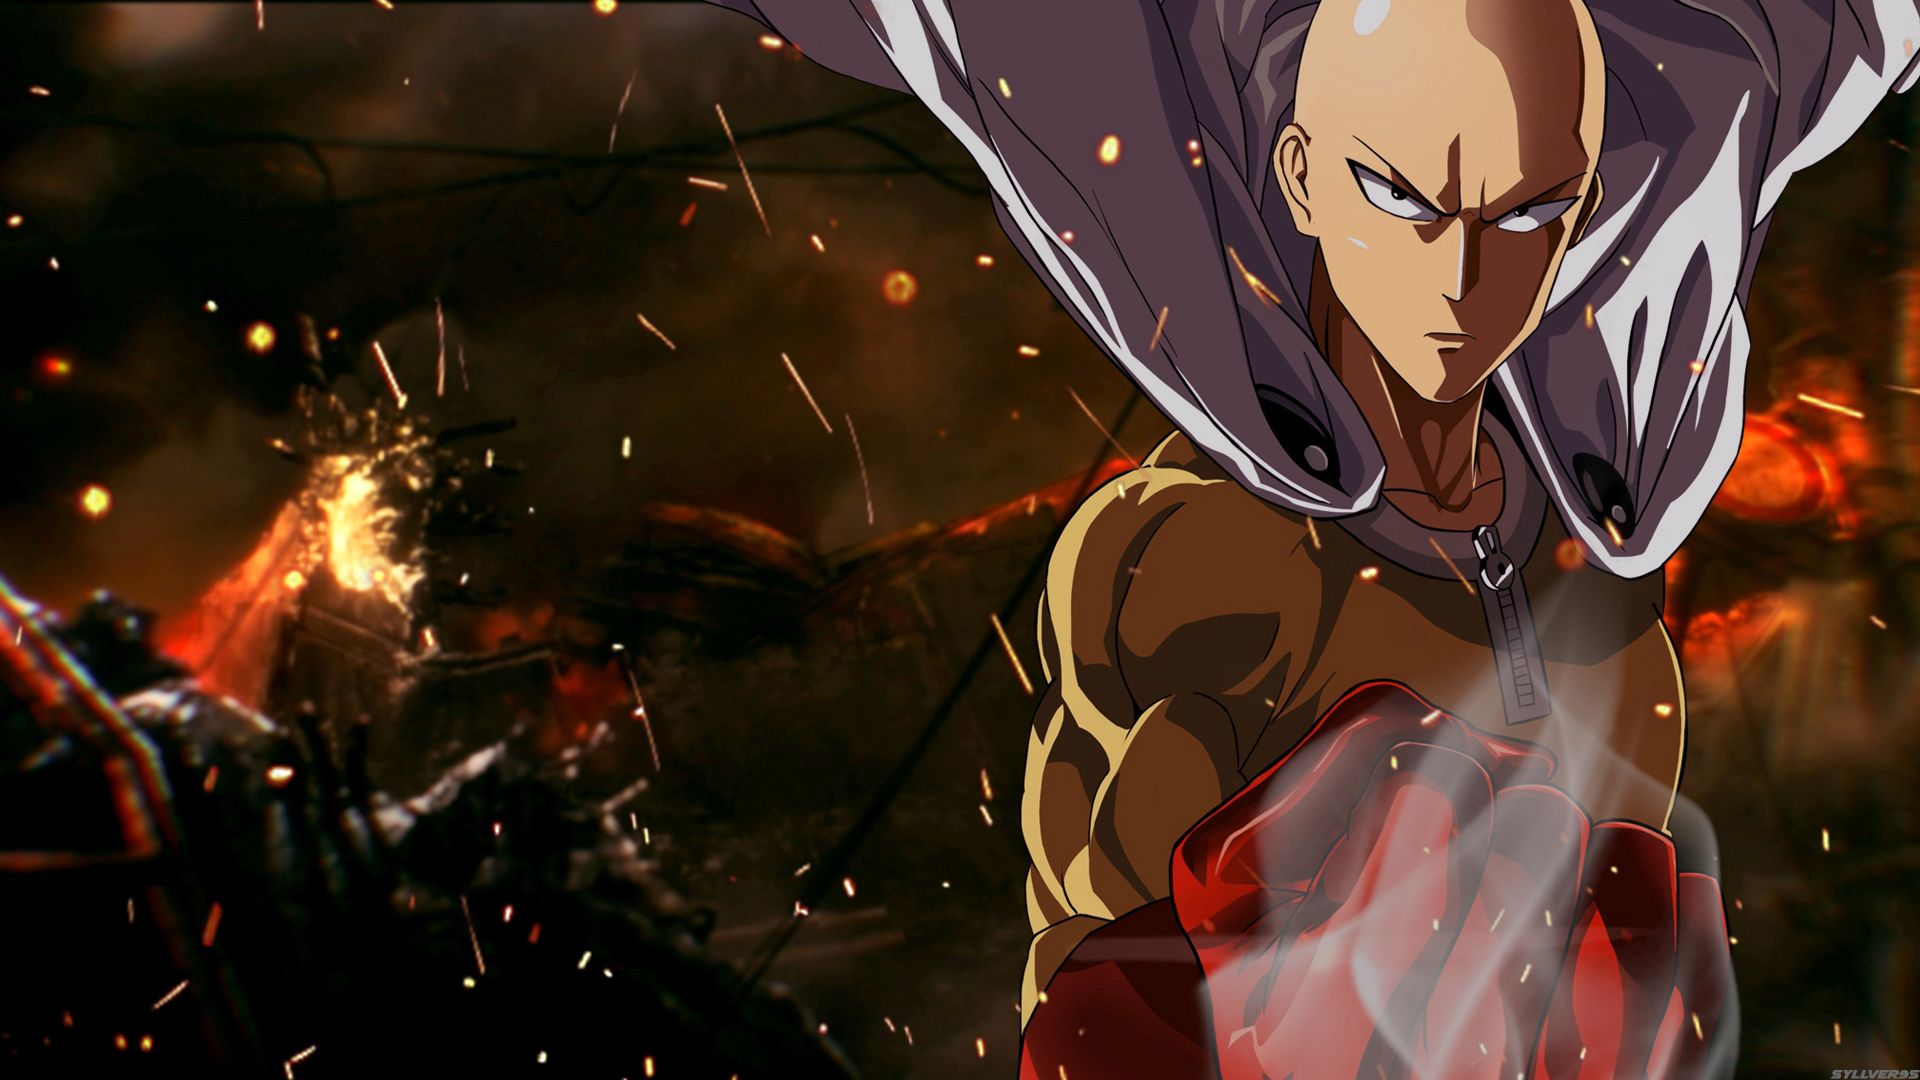 142 Saitama One Punch Man Hd Wallpapers Backgrounds